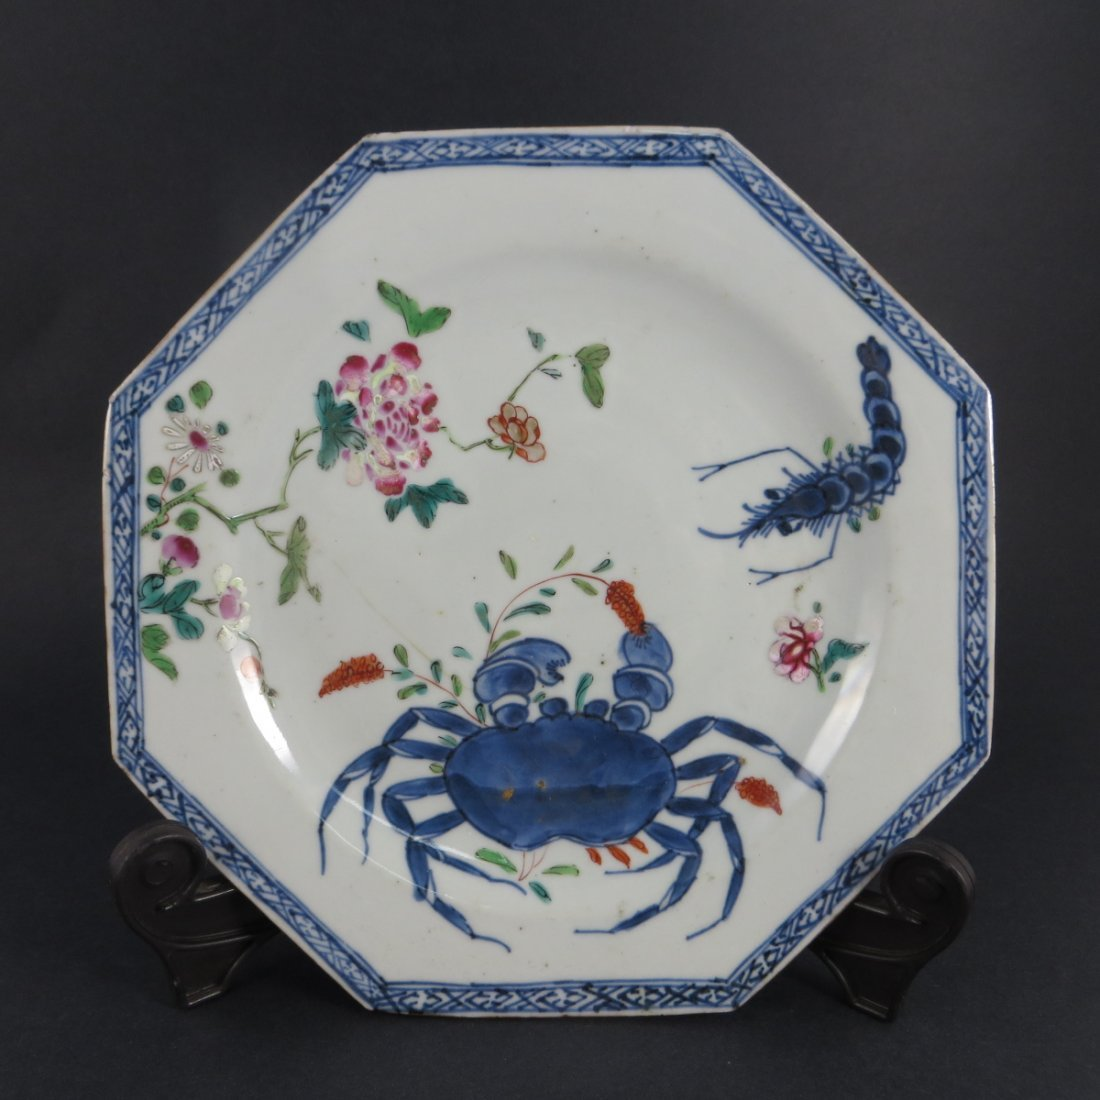 Chinese Famille Rose Porcelain Plate, Qian Long